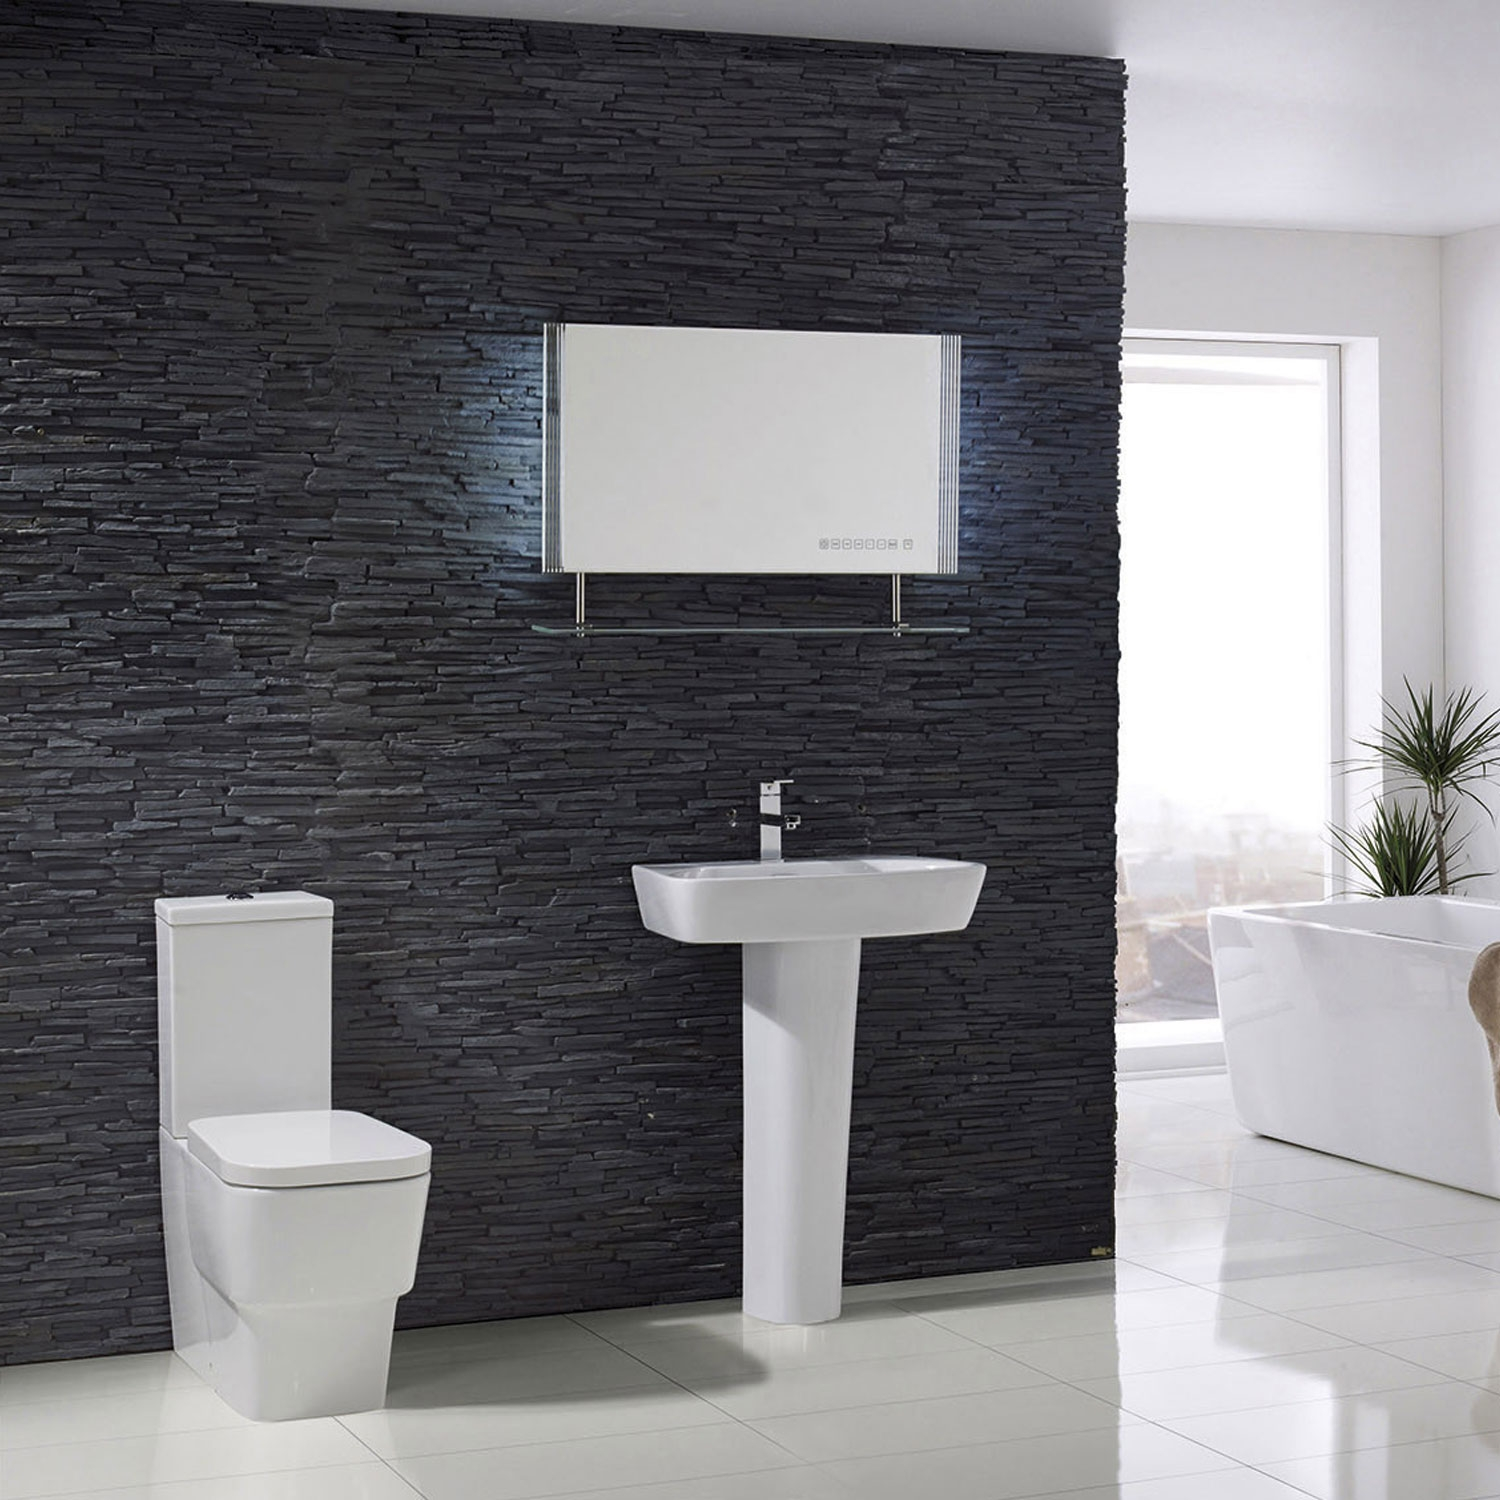 Verona Cubix Flush to Wall Close Coupled Toilet with Push Button Cistern - Soft Close Seat